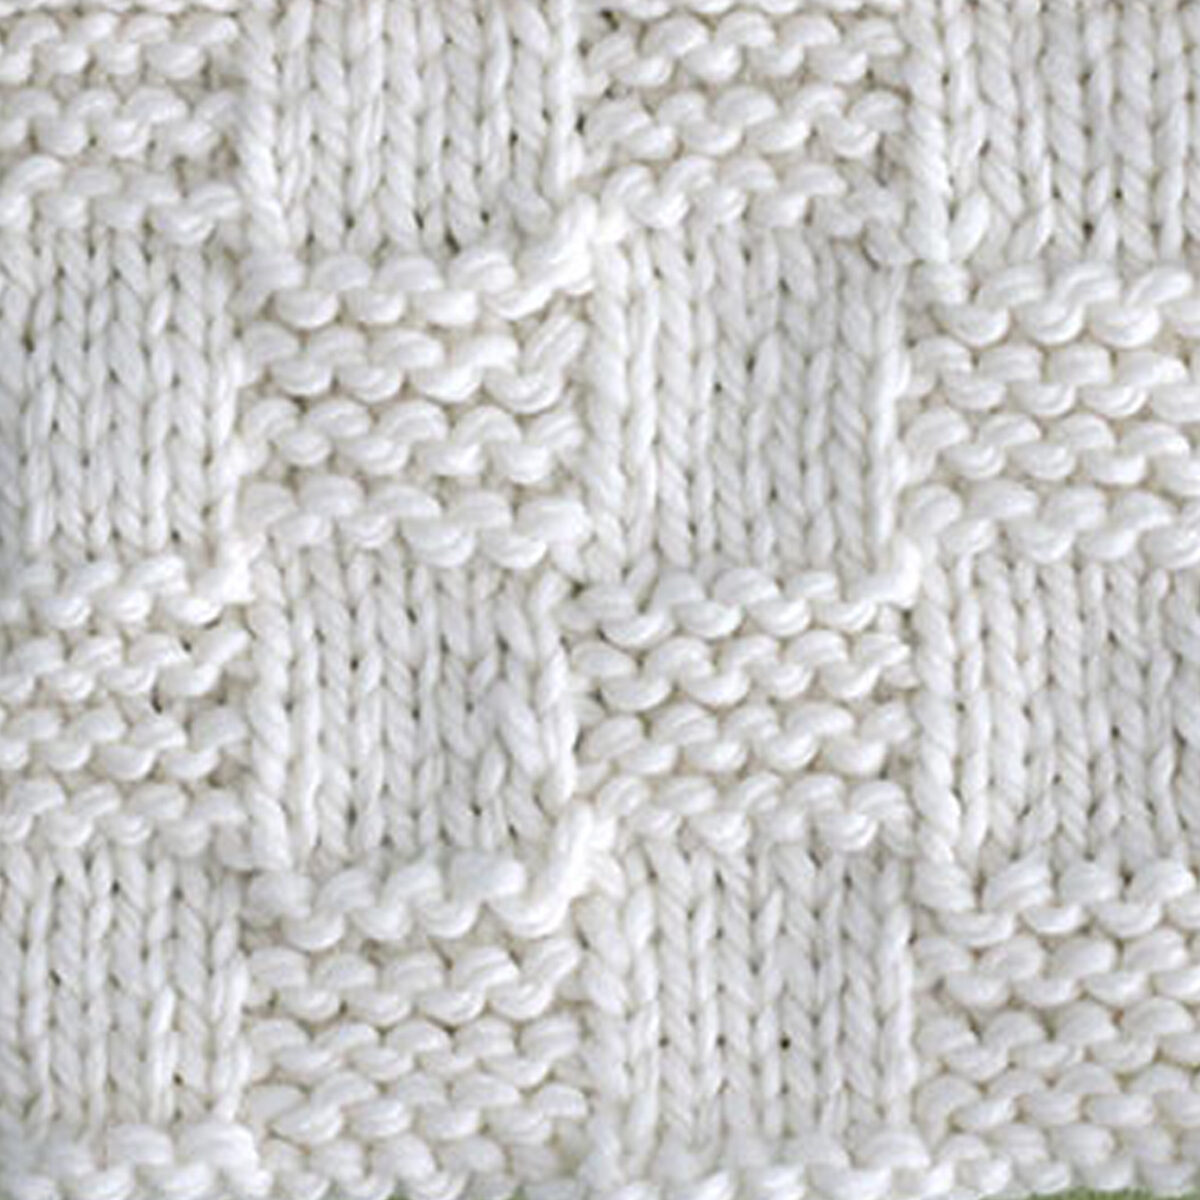 Garter Checkerboard knitting stitch pattern in white yarn color